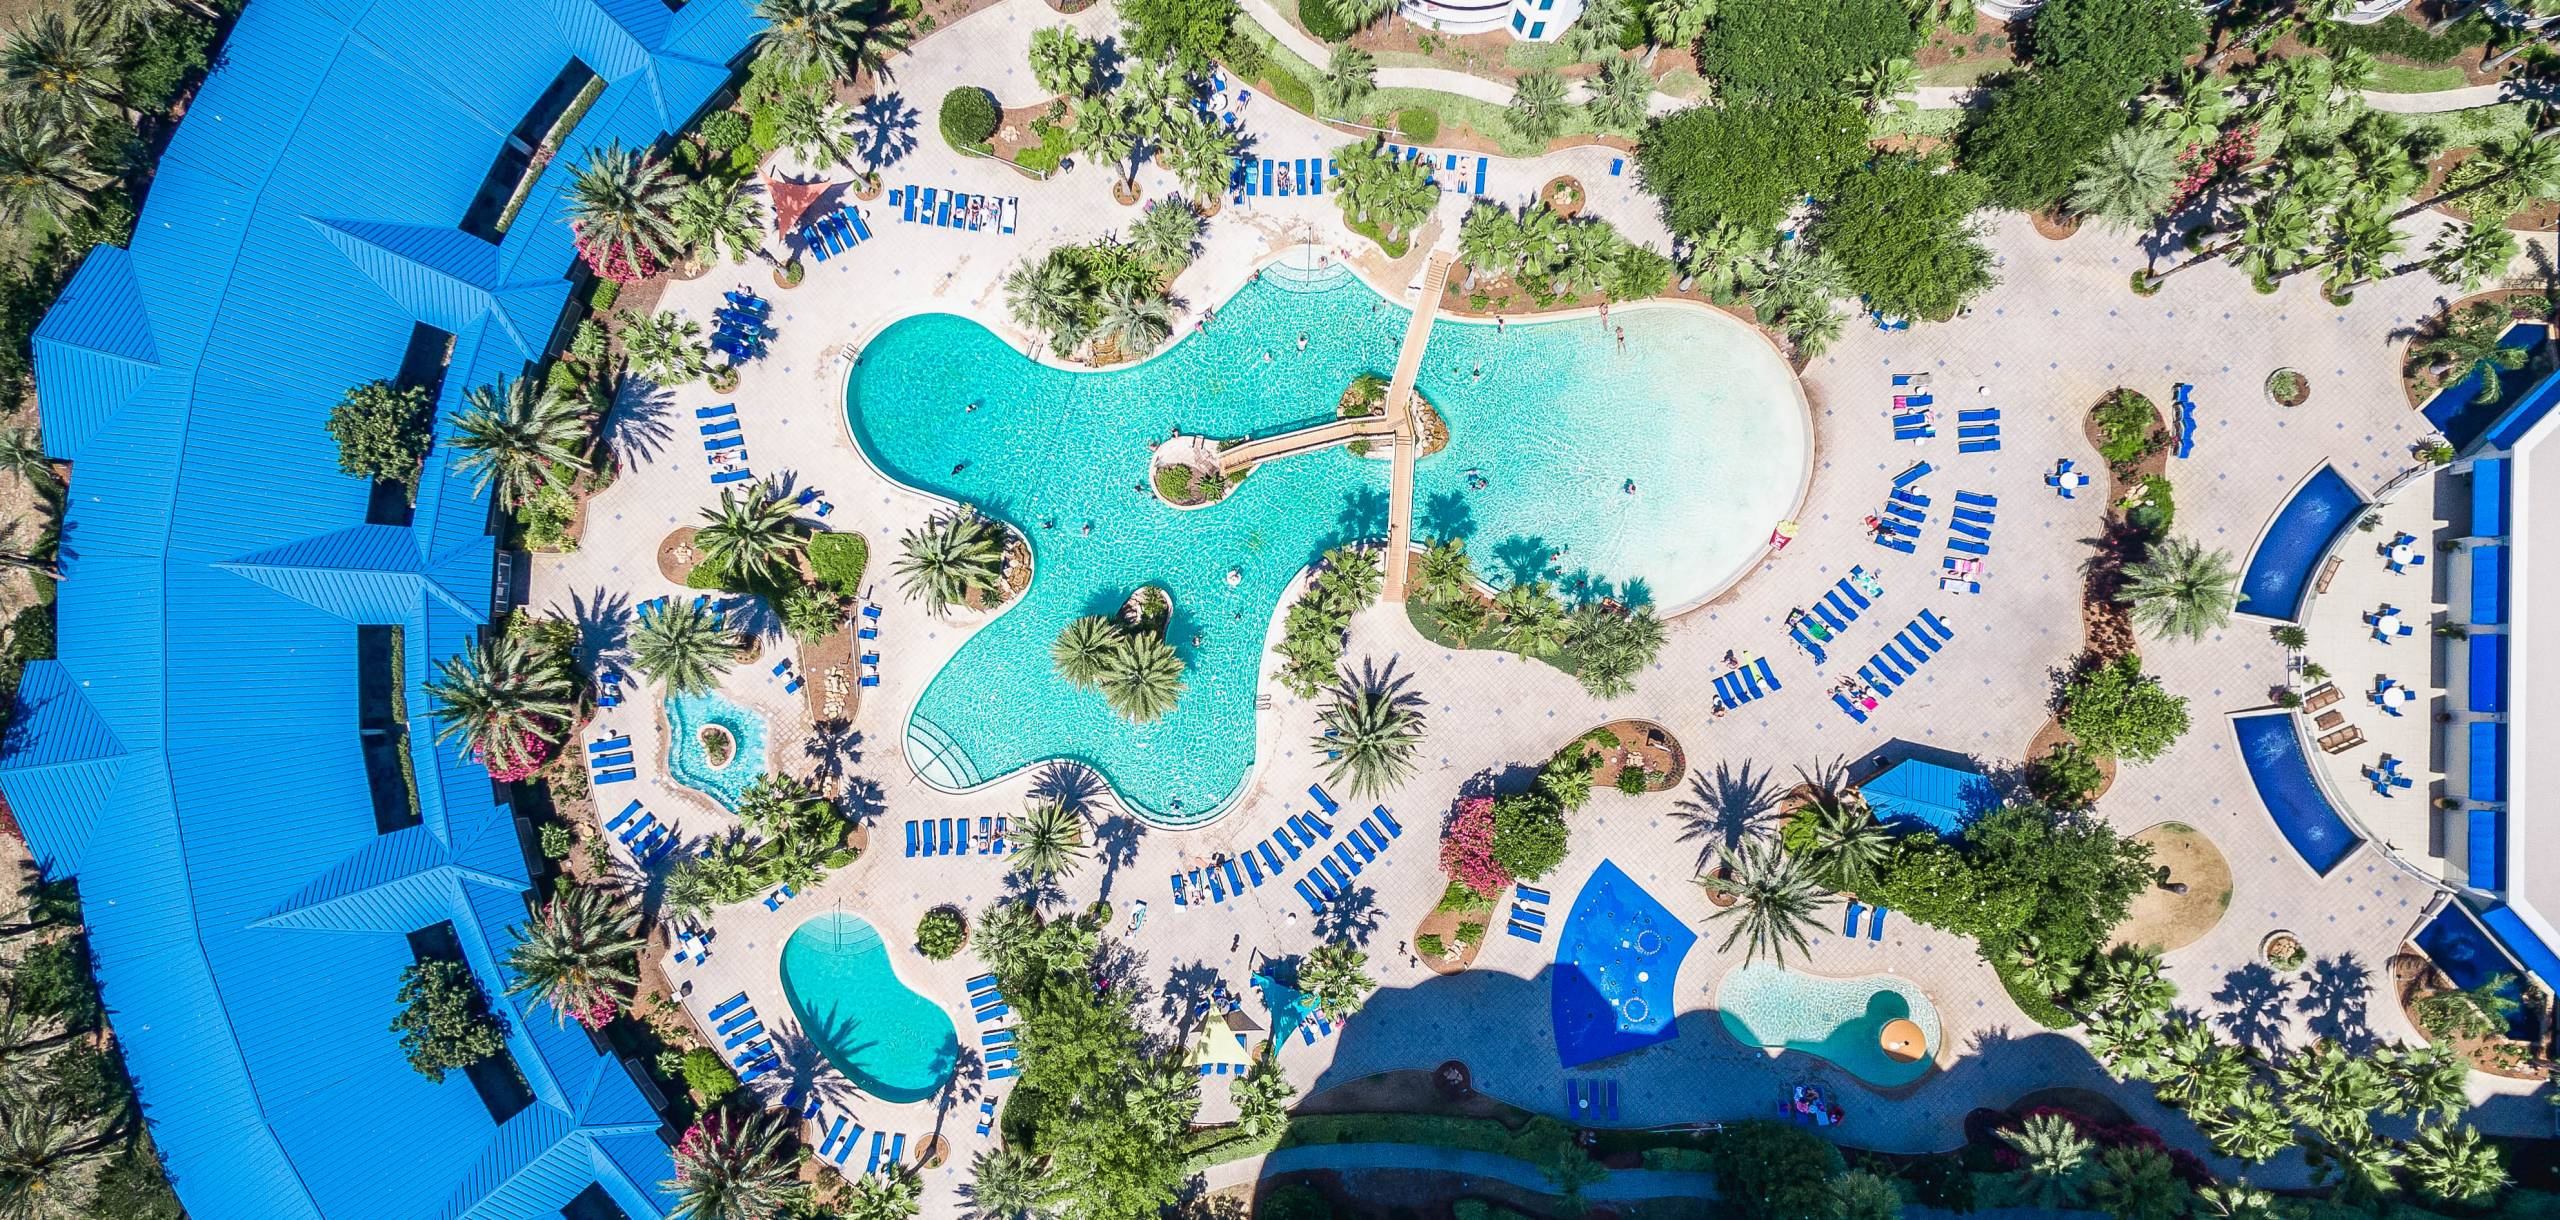 1 The Palms of Destin Resort and Conference Center